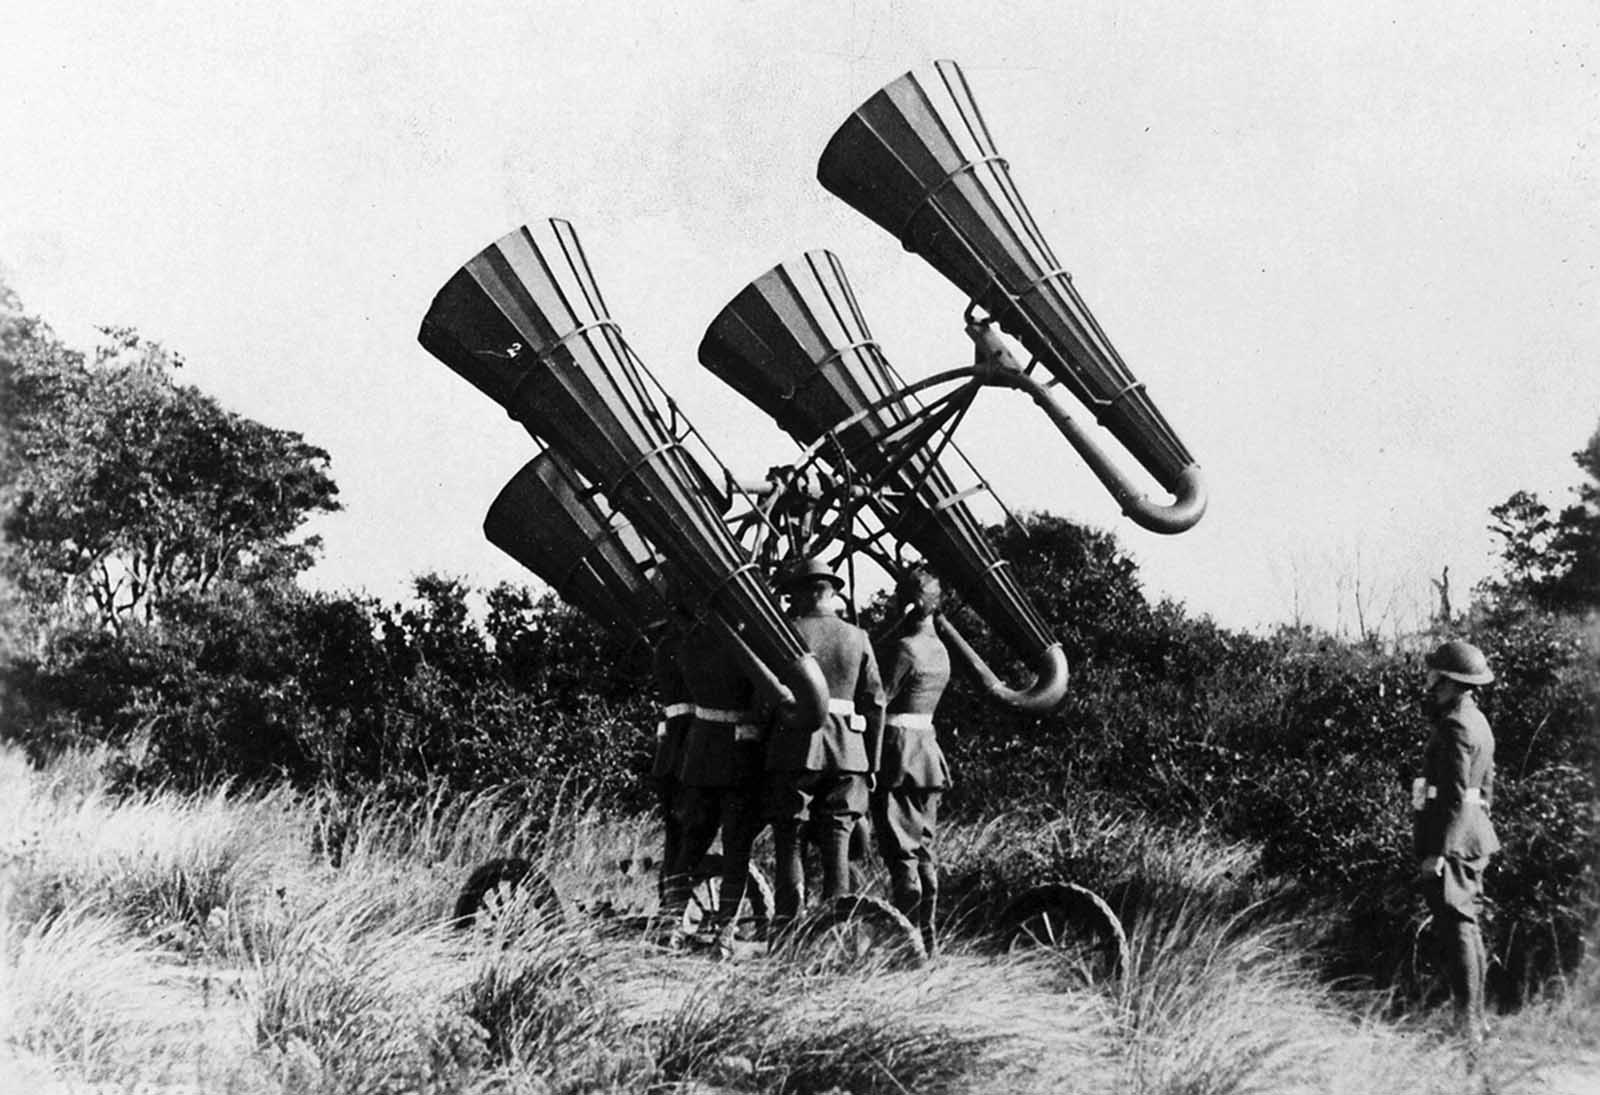 American troops using a newly-developed acoustic locator, mounted on a wheeled platform. The large horns amplified distant sounds, monitored through headphones worn by a crew member, who could direct the platform to move and pinpoint distant enemy aircraft. Development of passive acoustic location accelerated during World War I, later surpassed by the development of radar in the 1940s.